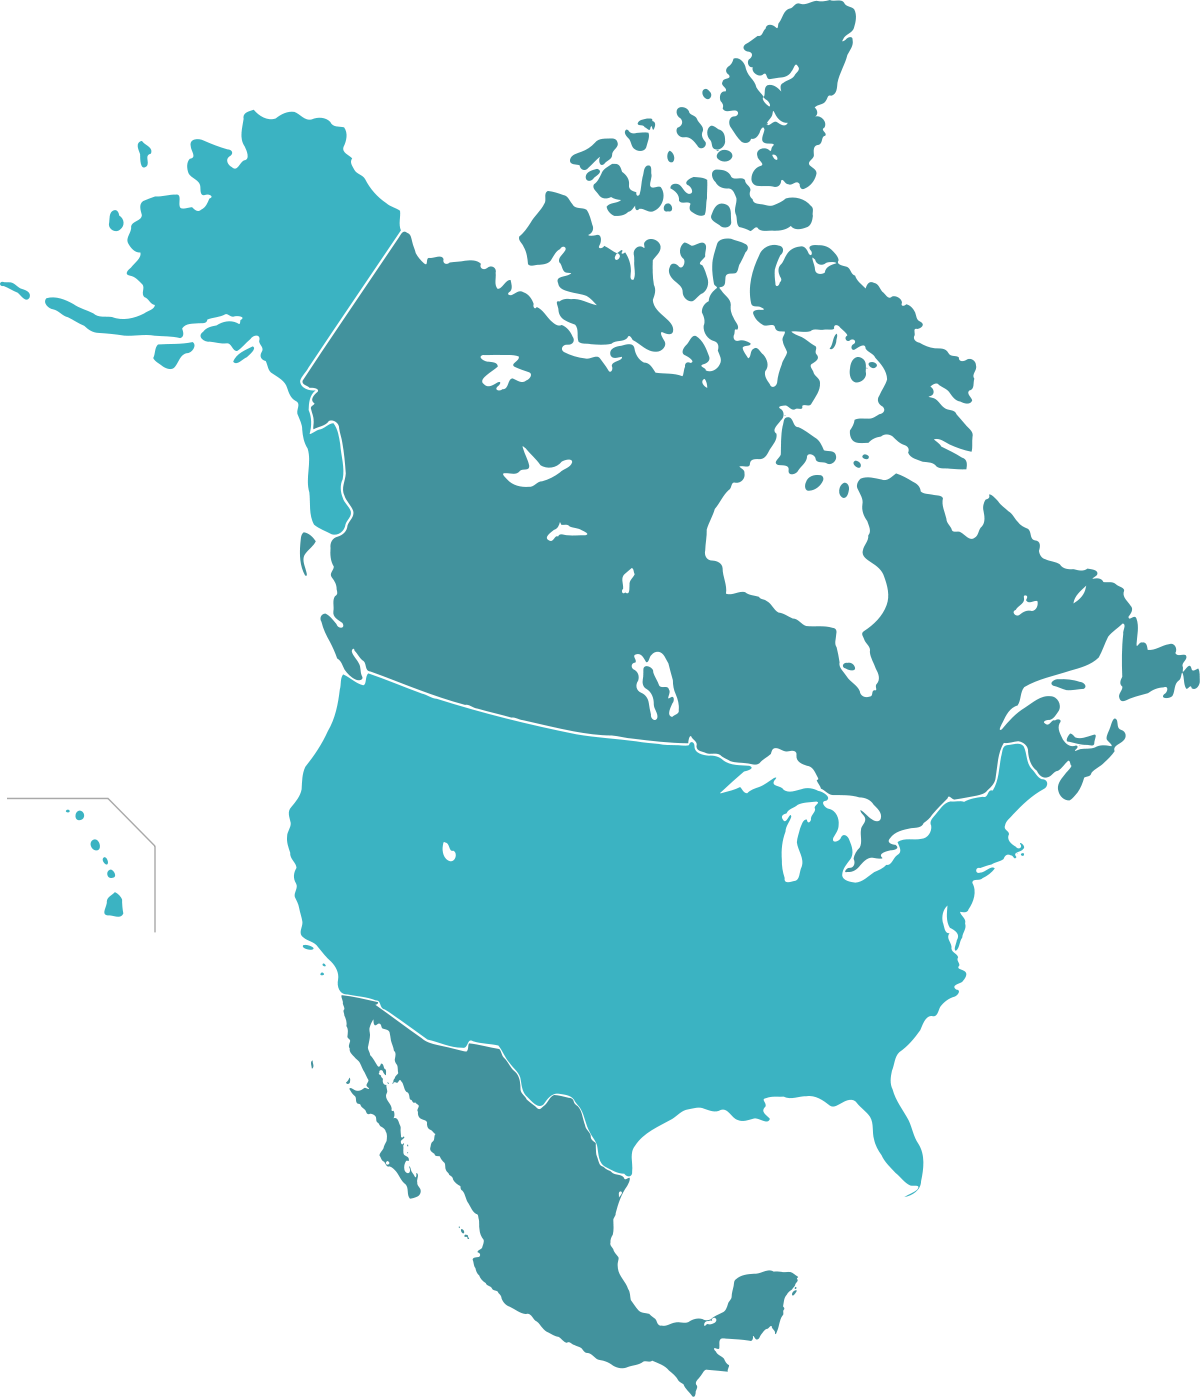 Us vector country usa. North american monetary union